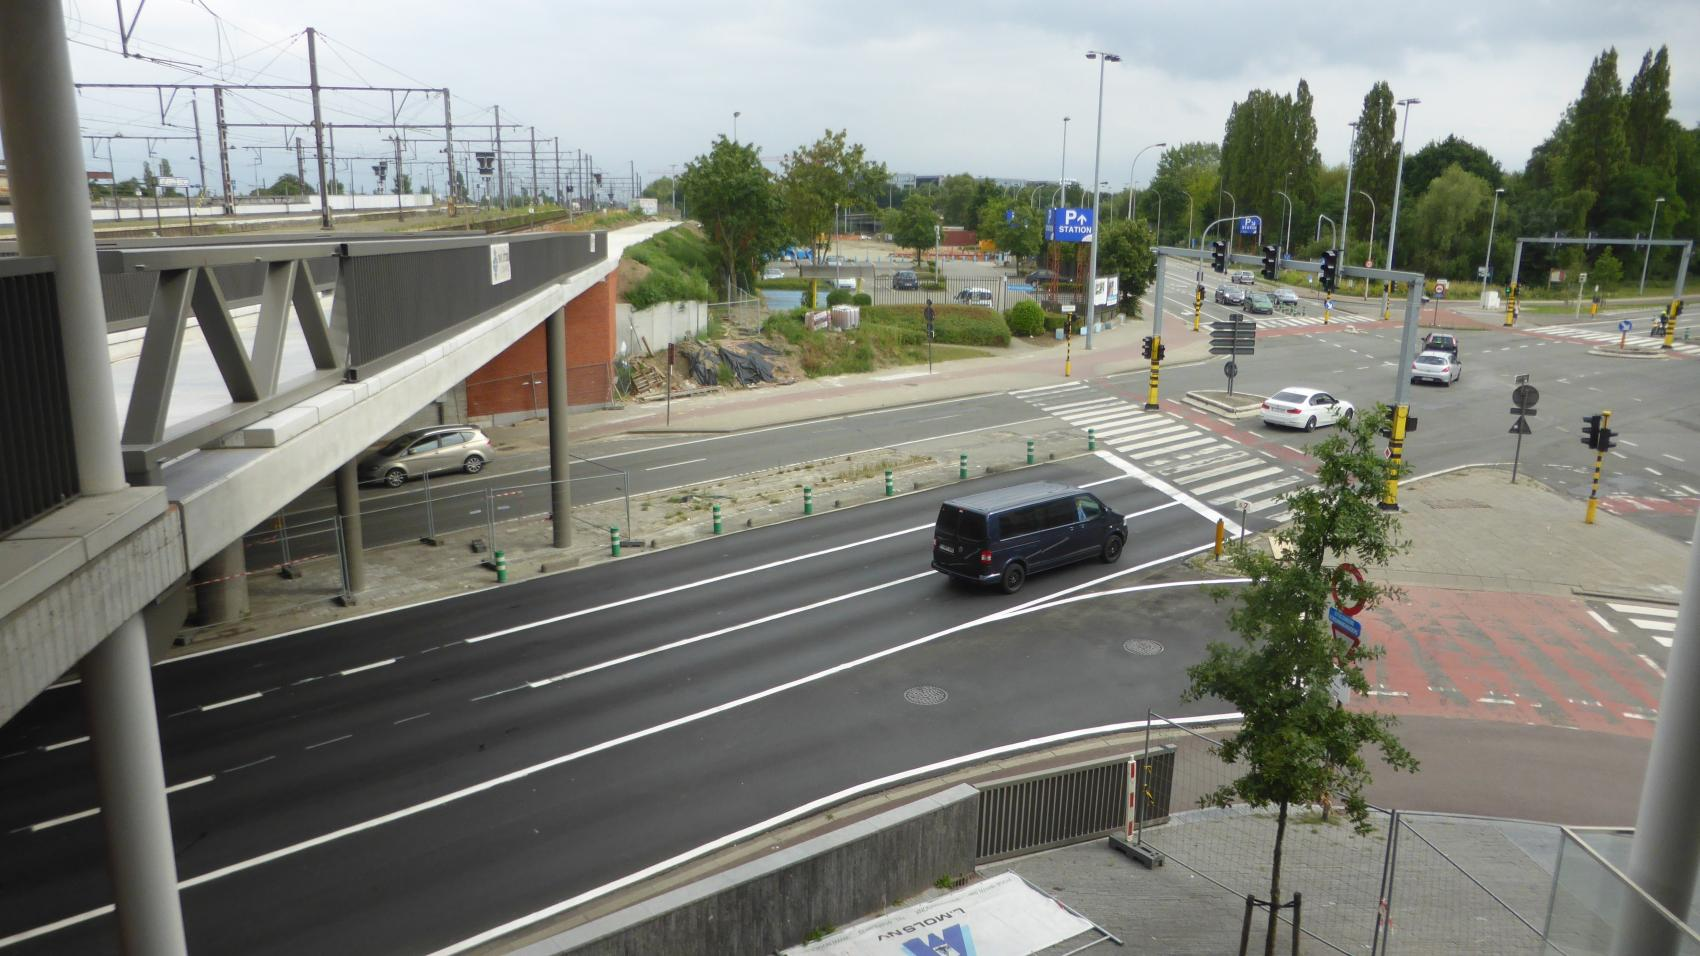 The new bridge over Binnensingel next to rail bridge (left) allows cyclists to bypass traffic lights on a major crossing (right) and reduce the number of interruptions on the cycle highway.